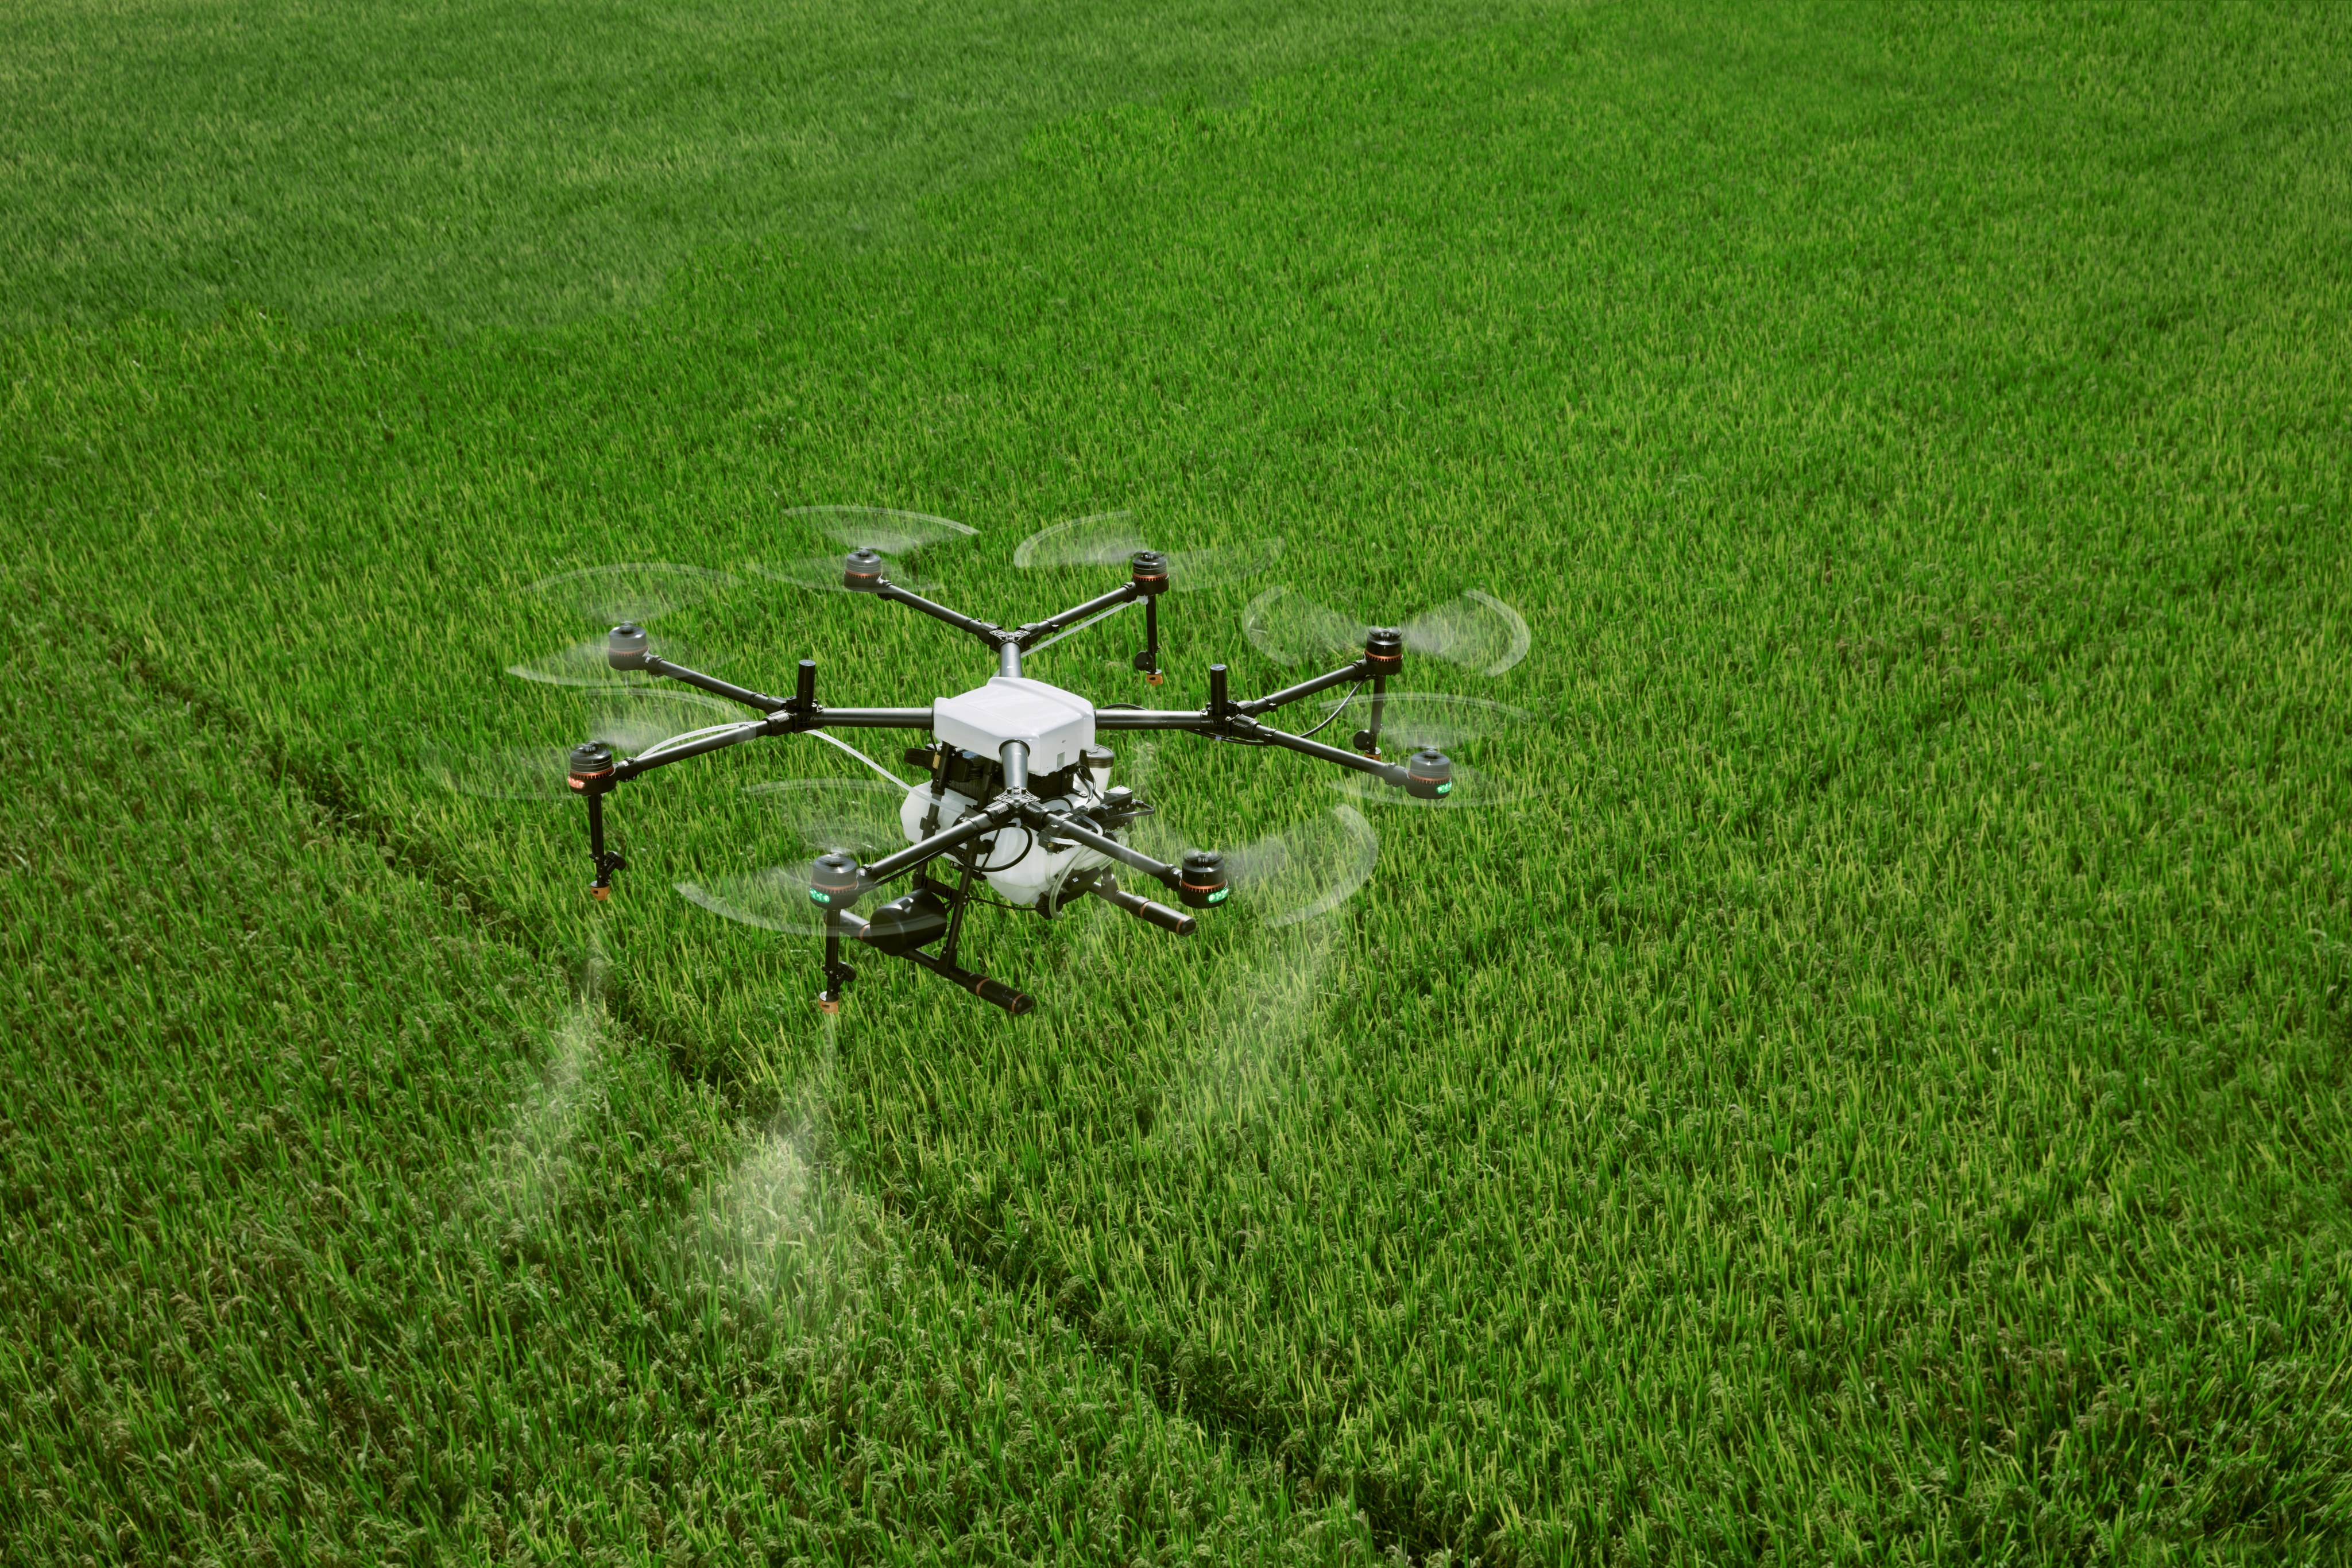 Spraying drone (Public Domain from Pixabay.com)